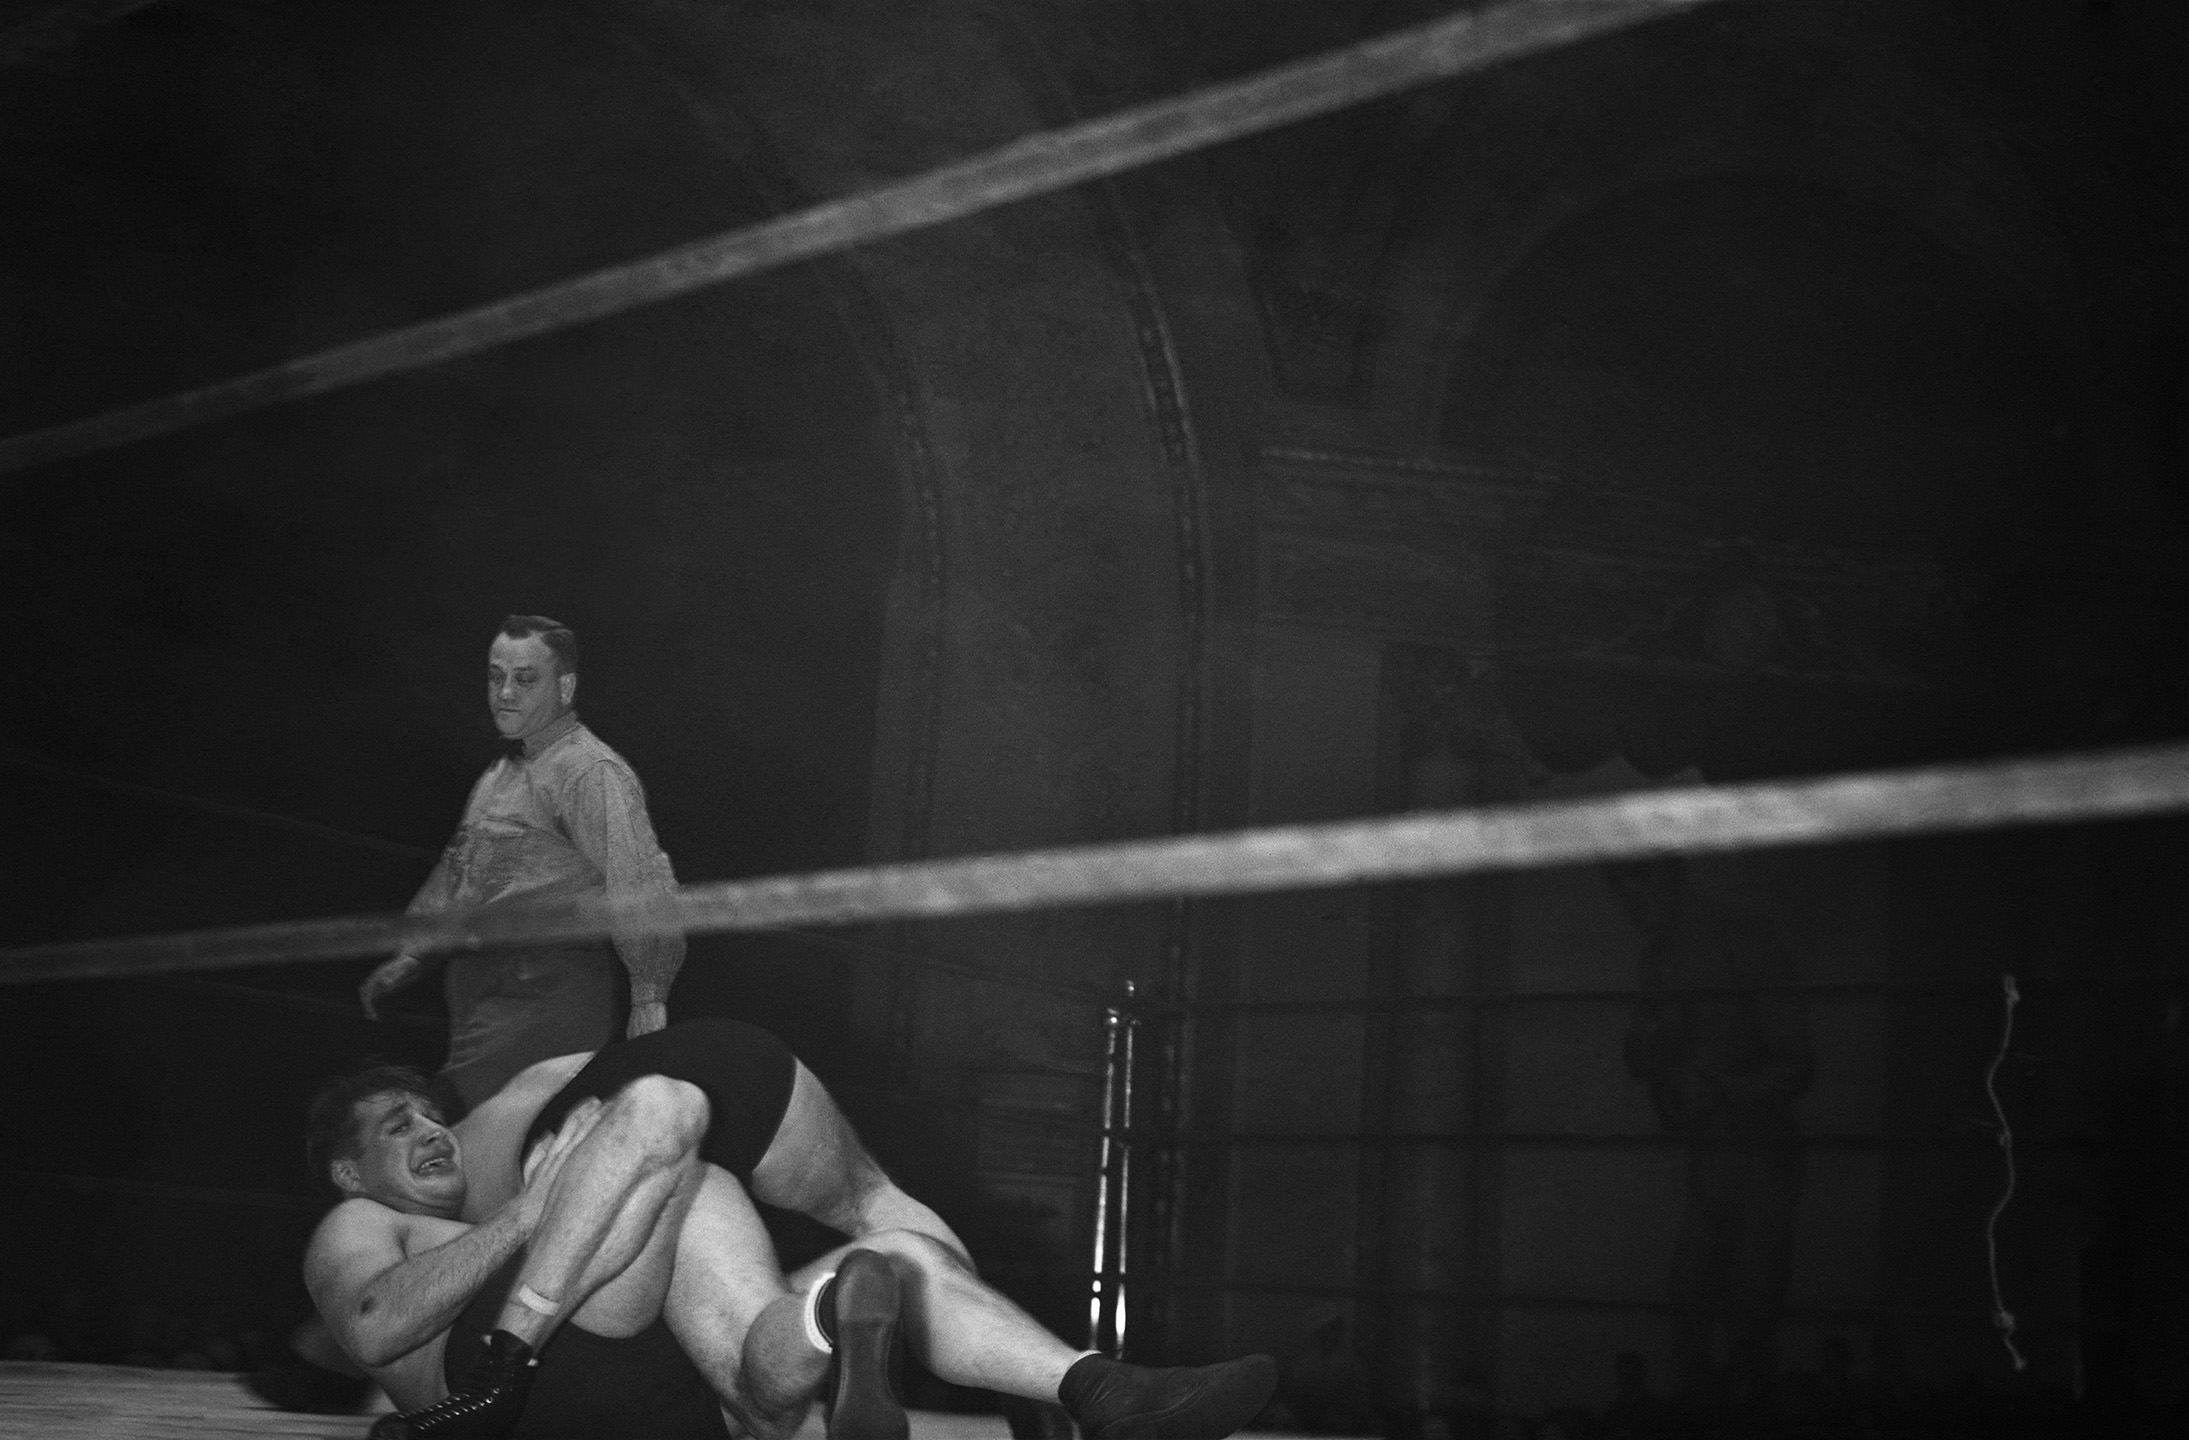 Referee watching wrestlers in the Hippodrome, 6th Avenue and 43rd Street, ca. 1938. Photographer unknown, WPA Federal Writers' Project collection, NYC Municipal Archives.